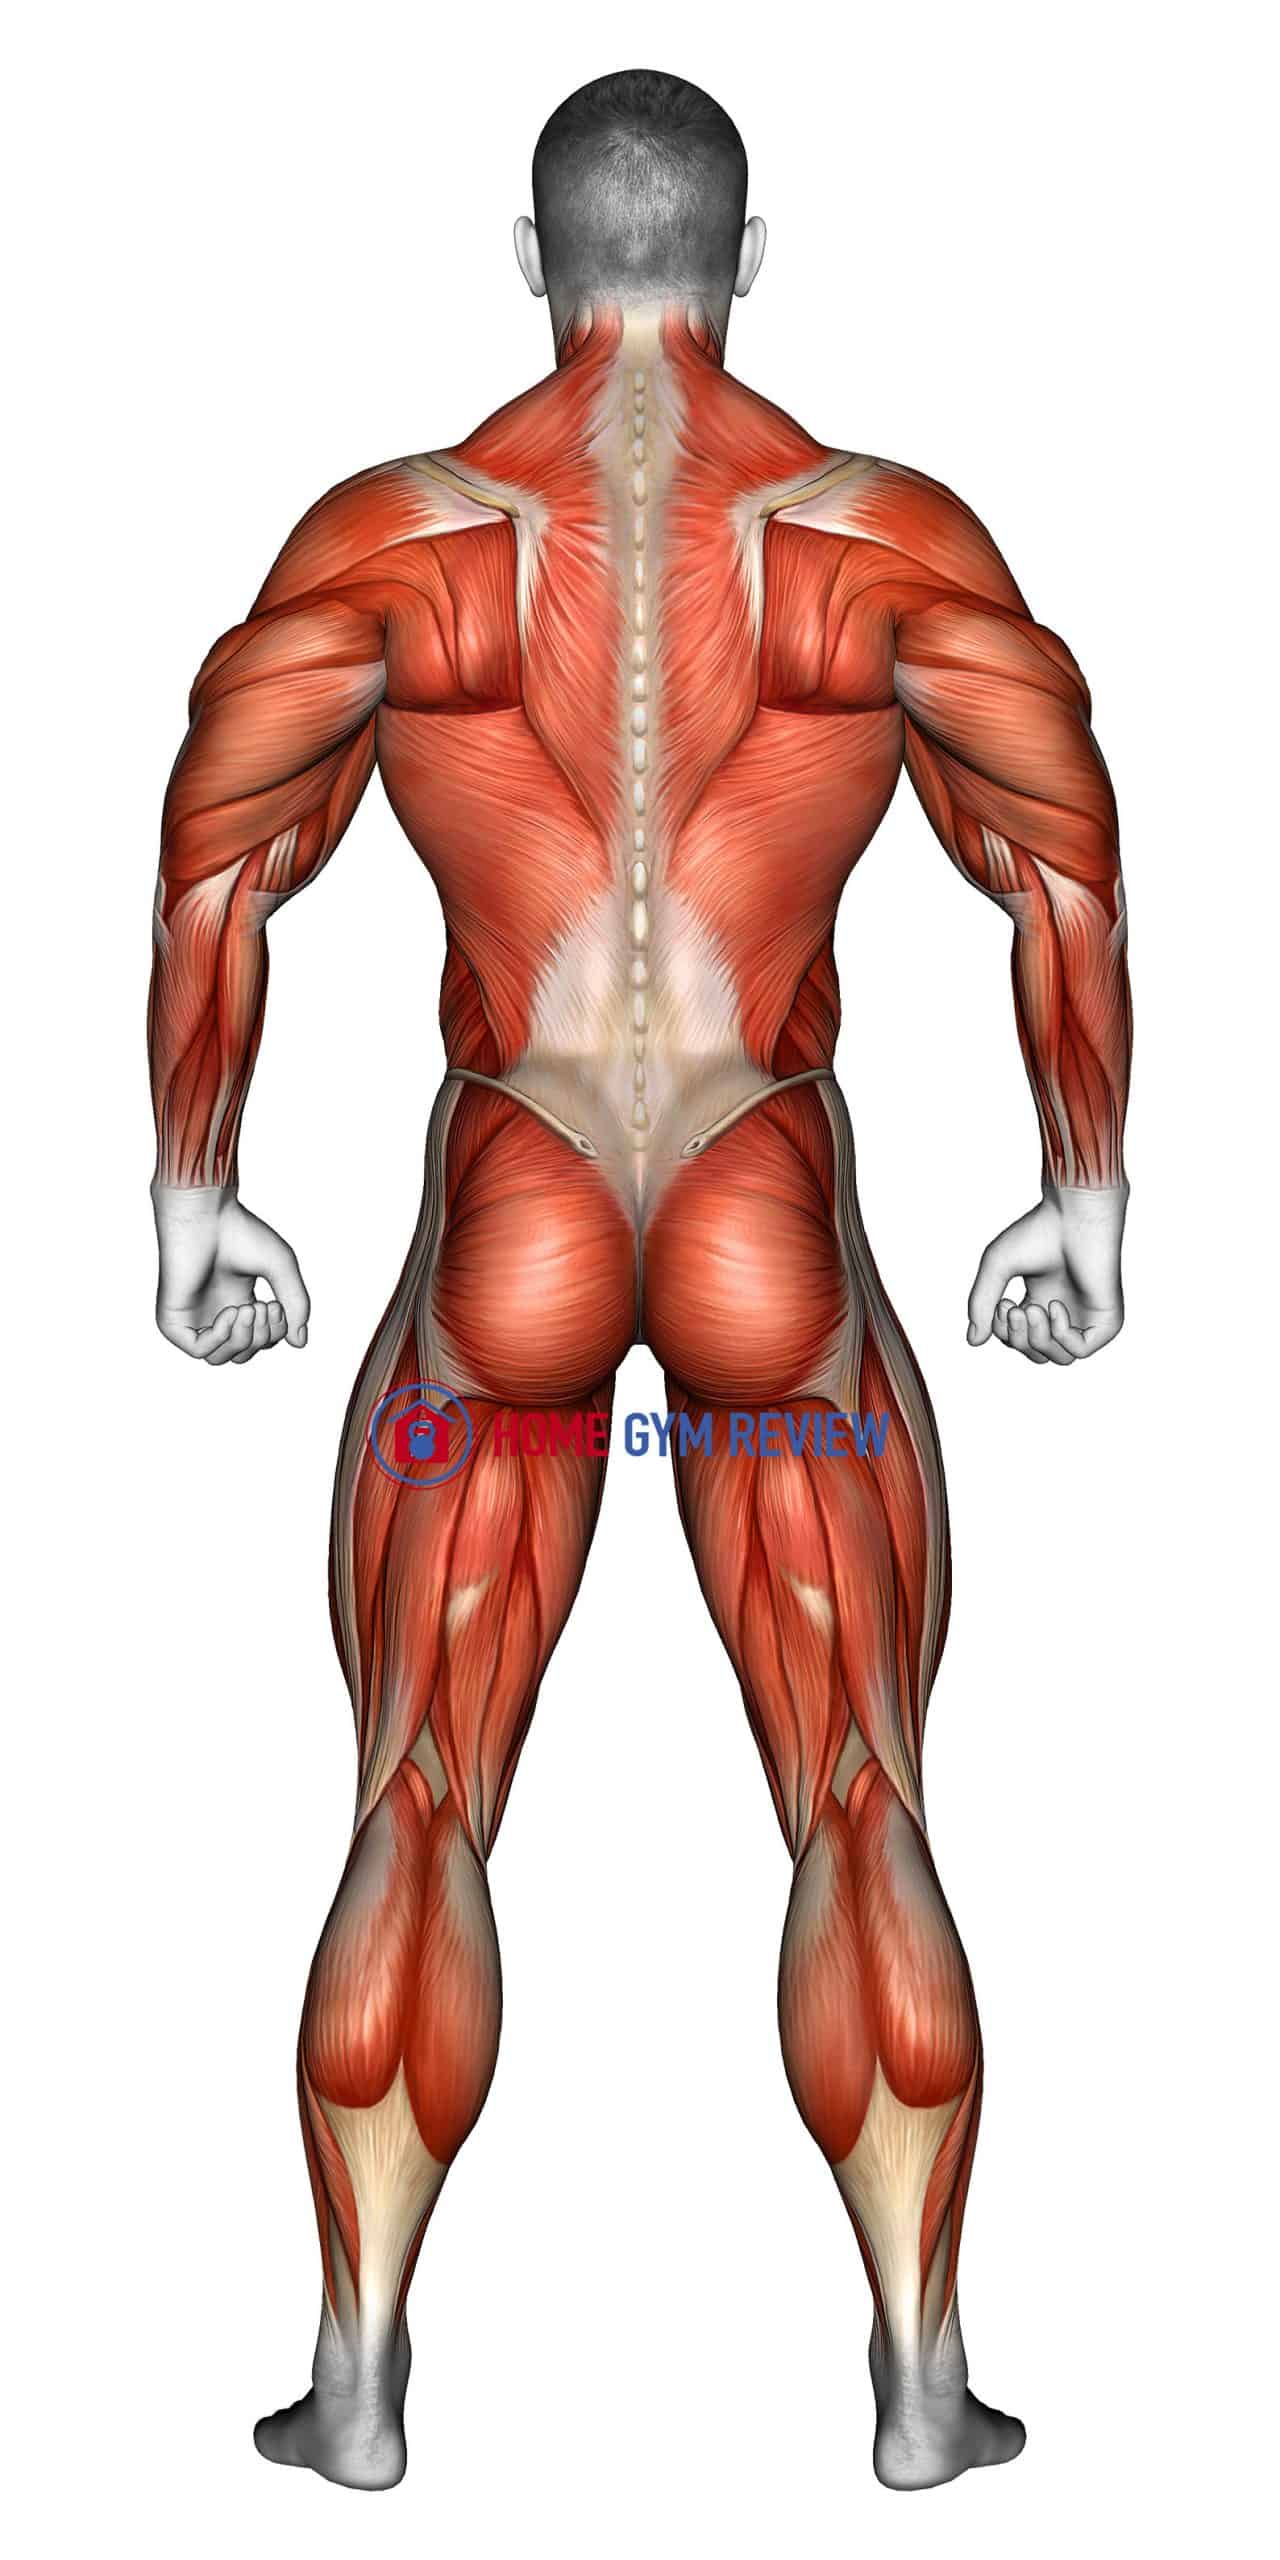 Body muscles. Back view